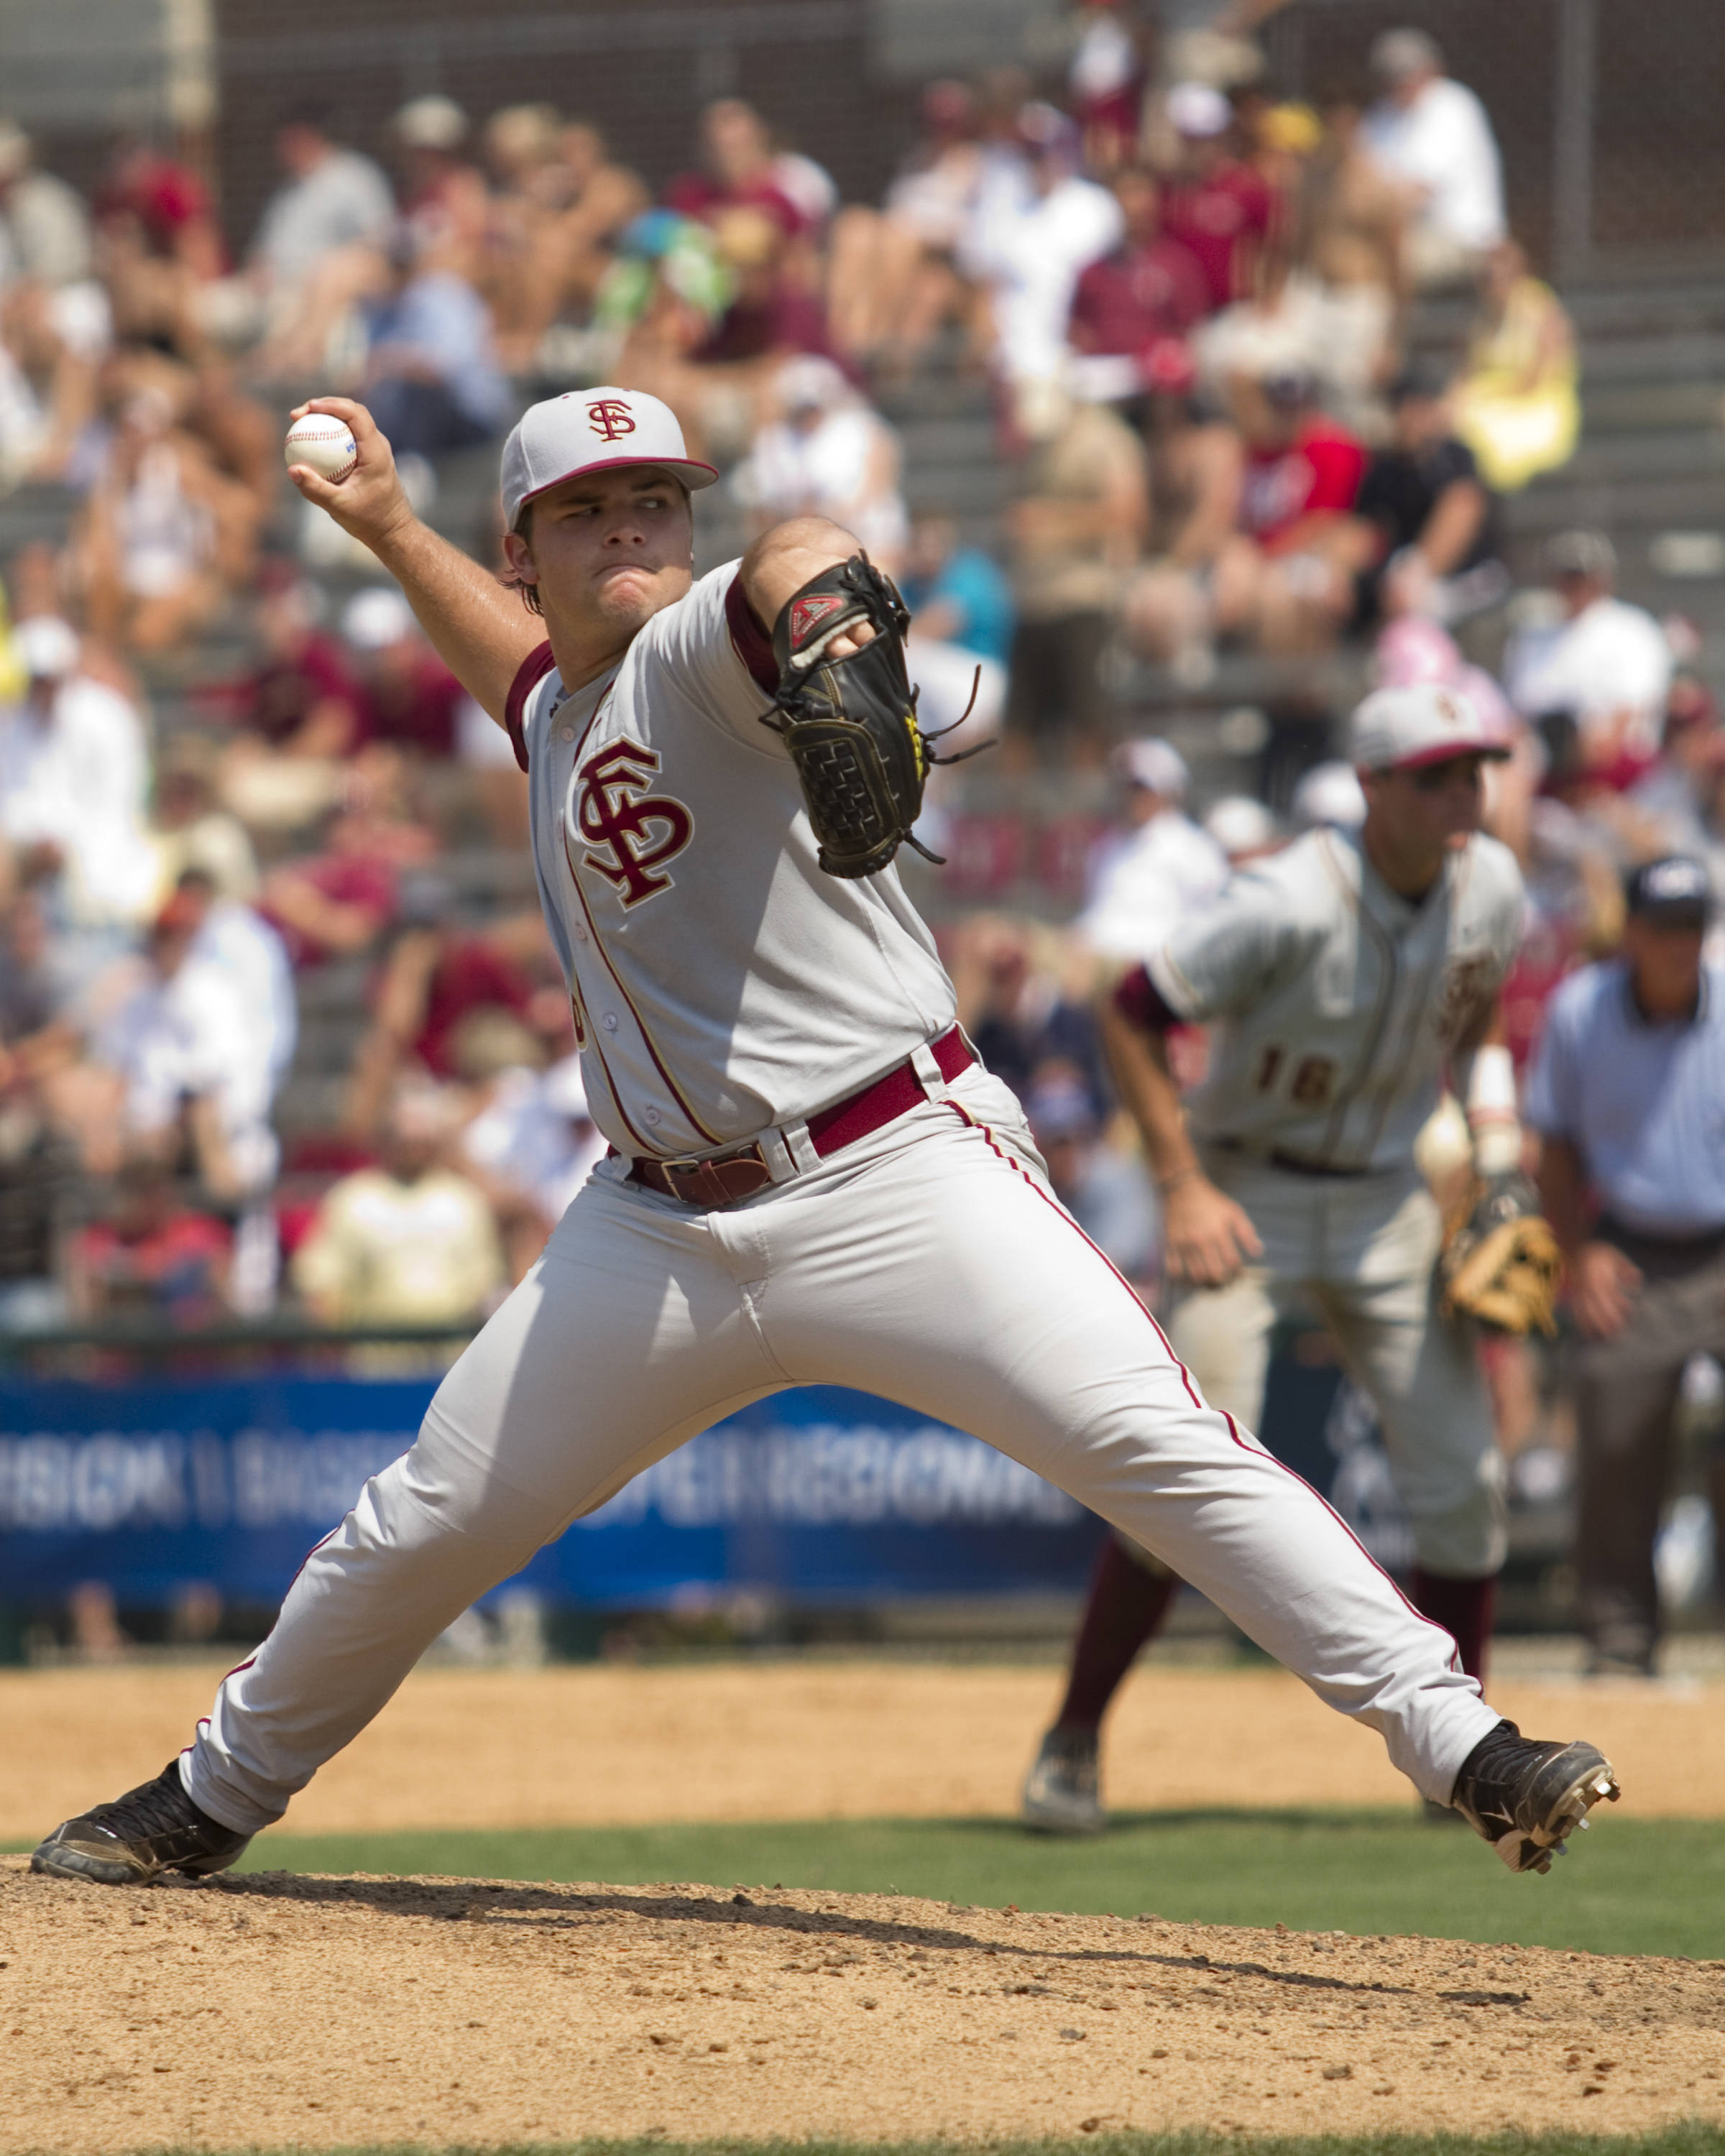 Scott Sitz (26) pitches for FSU in the bottom of the eighth inning.